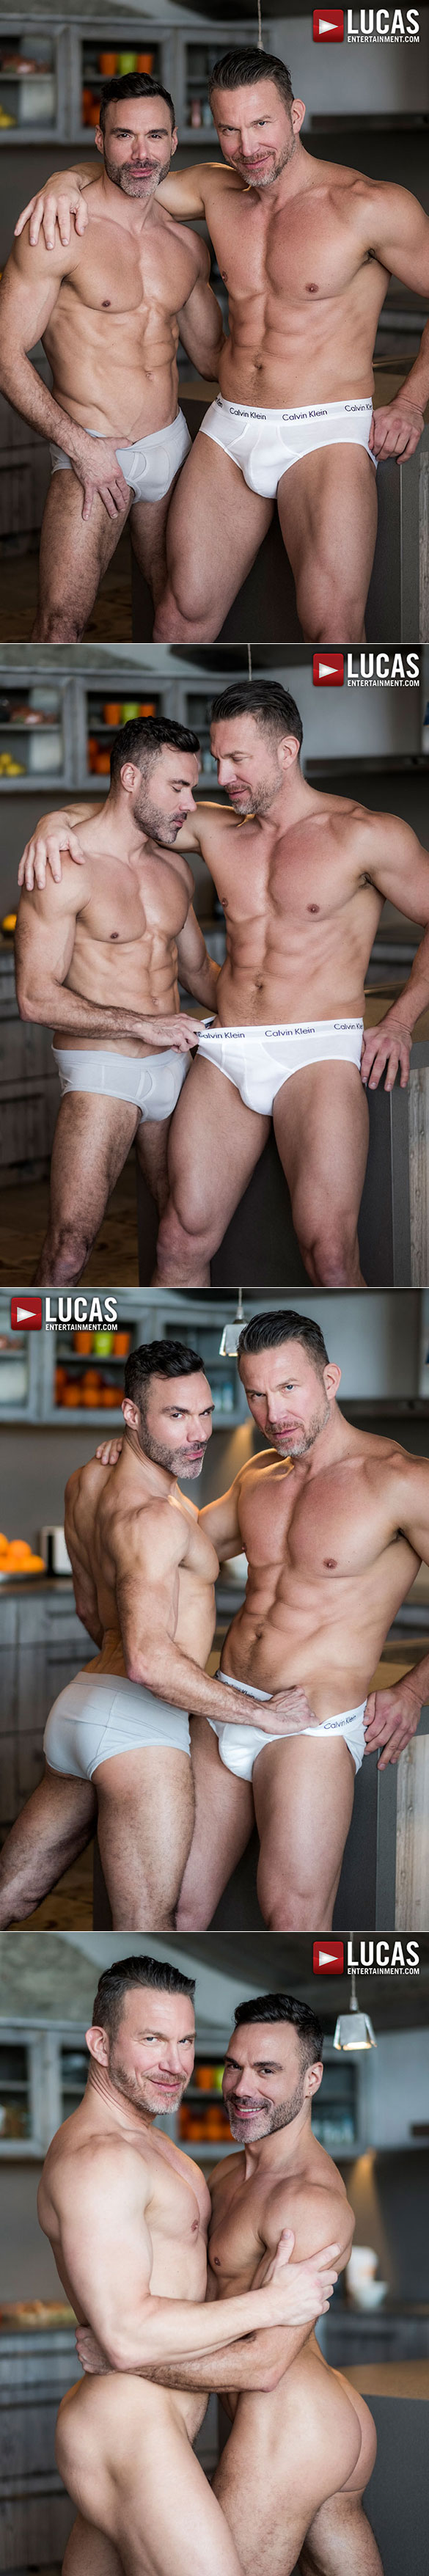 "Lucas Entertainment: Tomas Brand and Manuel Skye blow each other in ""Daddy's Good Boy"""